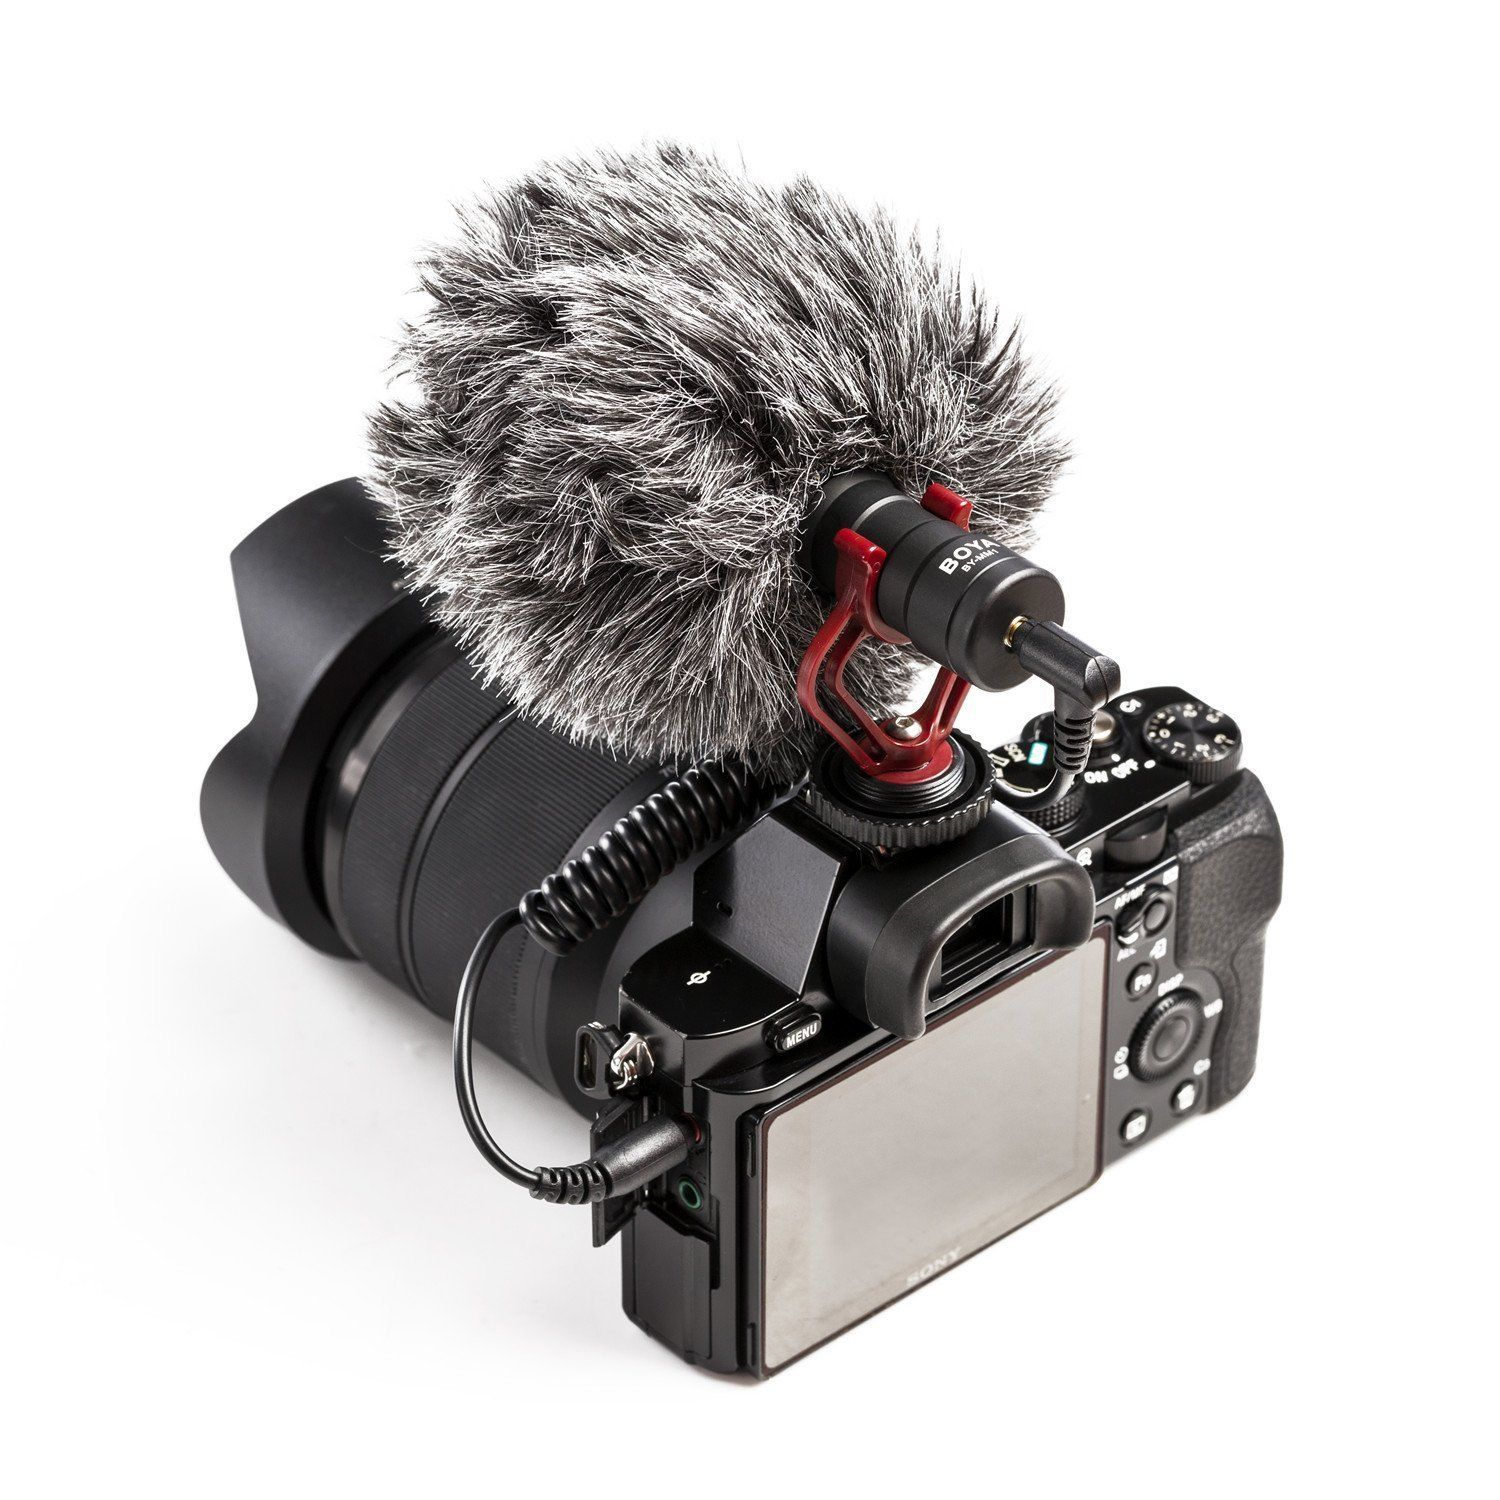 Boya By Mm1 Shotgun Microphone For Iphone Android Smartphone